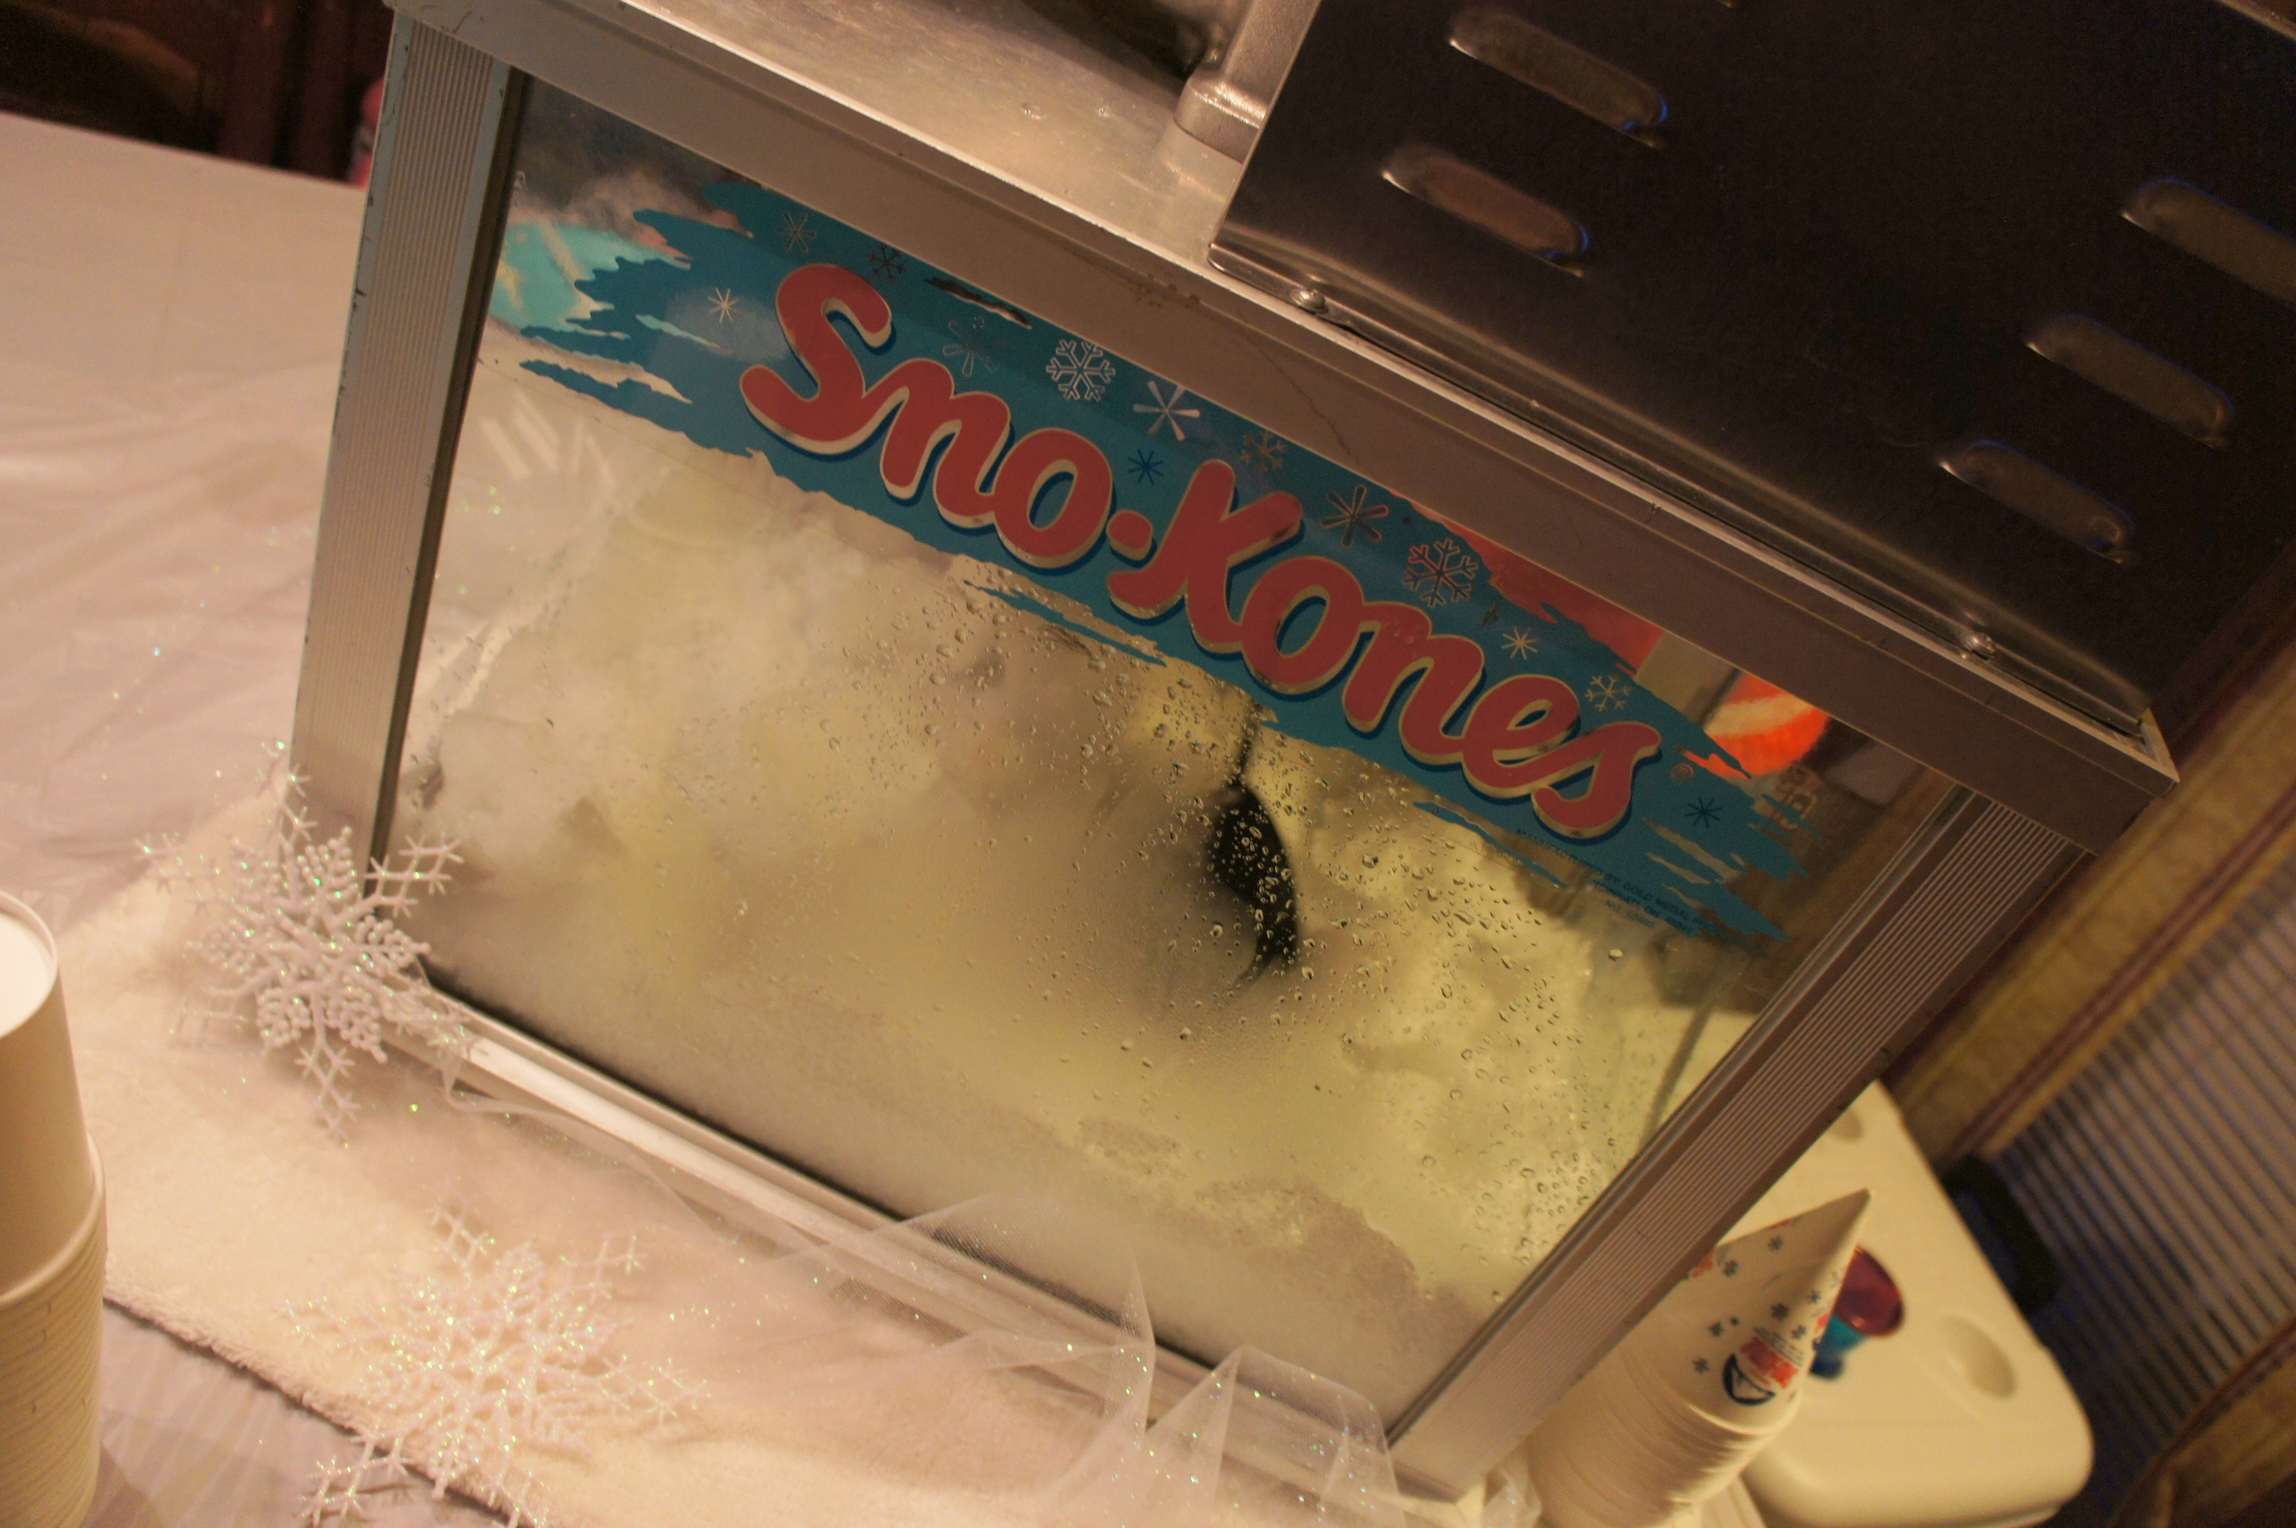 Frozen themed food - Sno-Cone machine